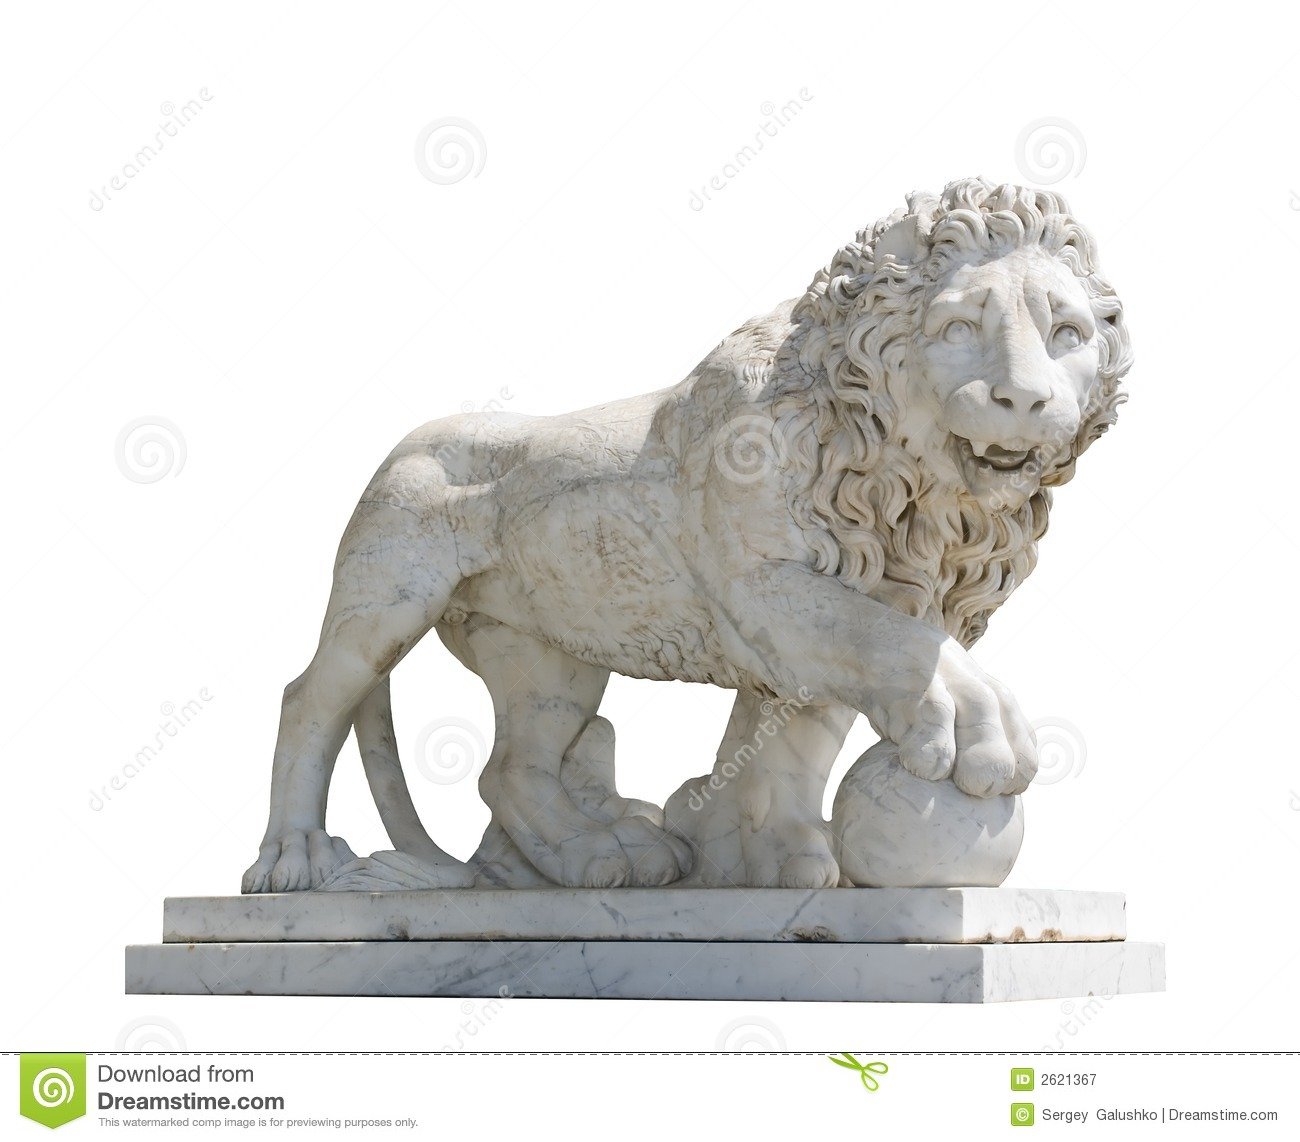 Isolated sculpture of a lion